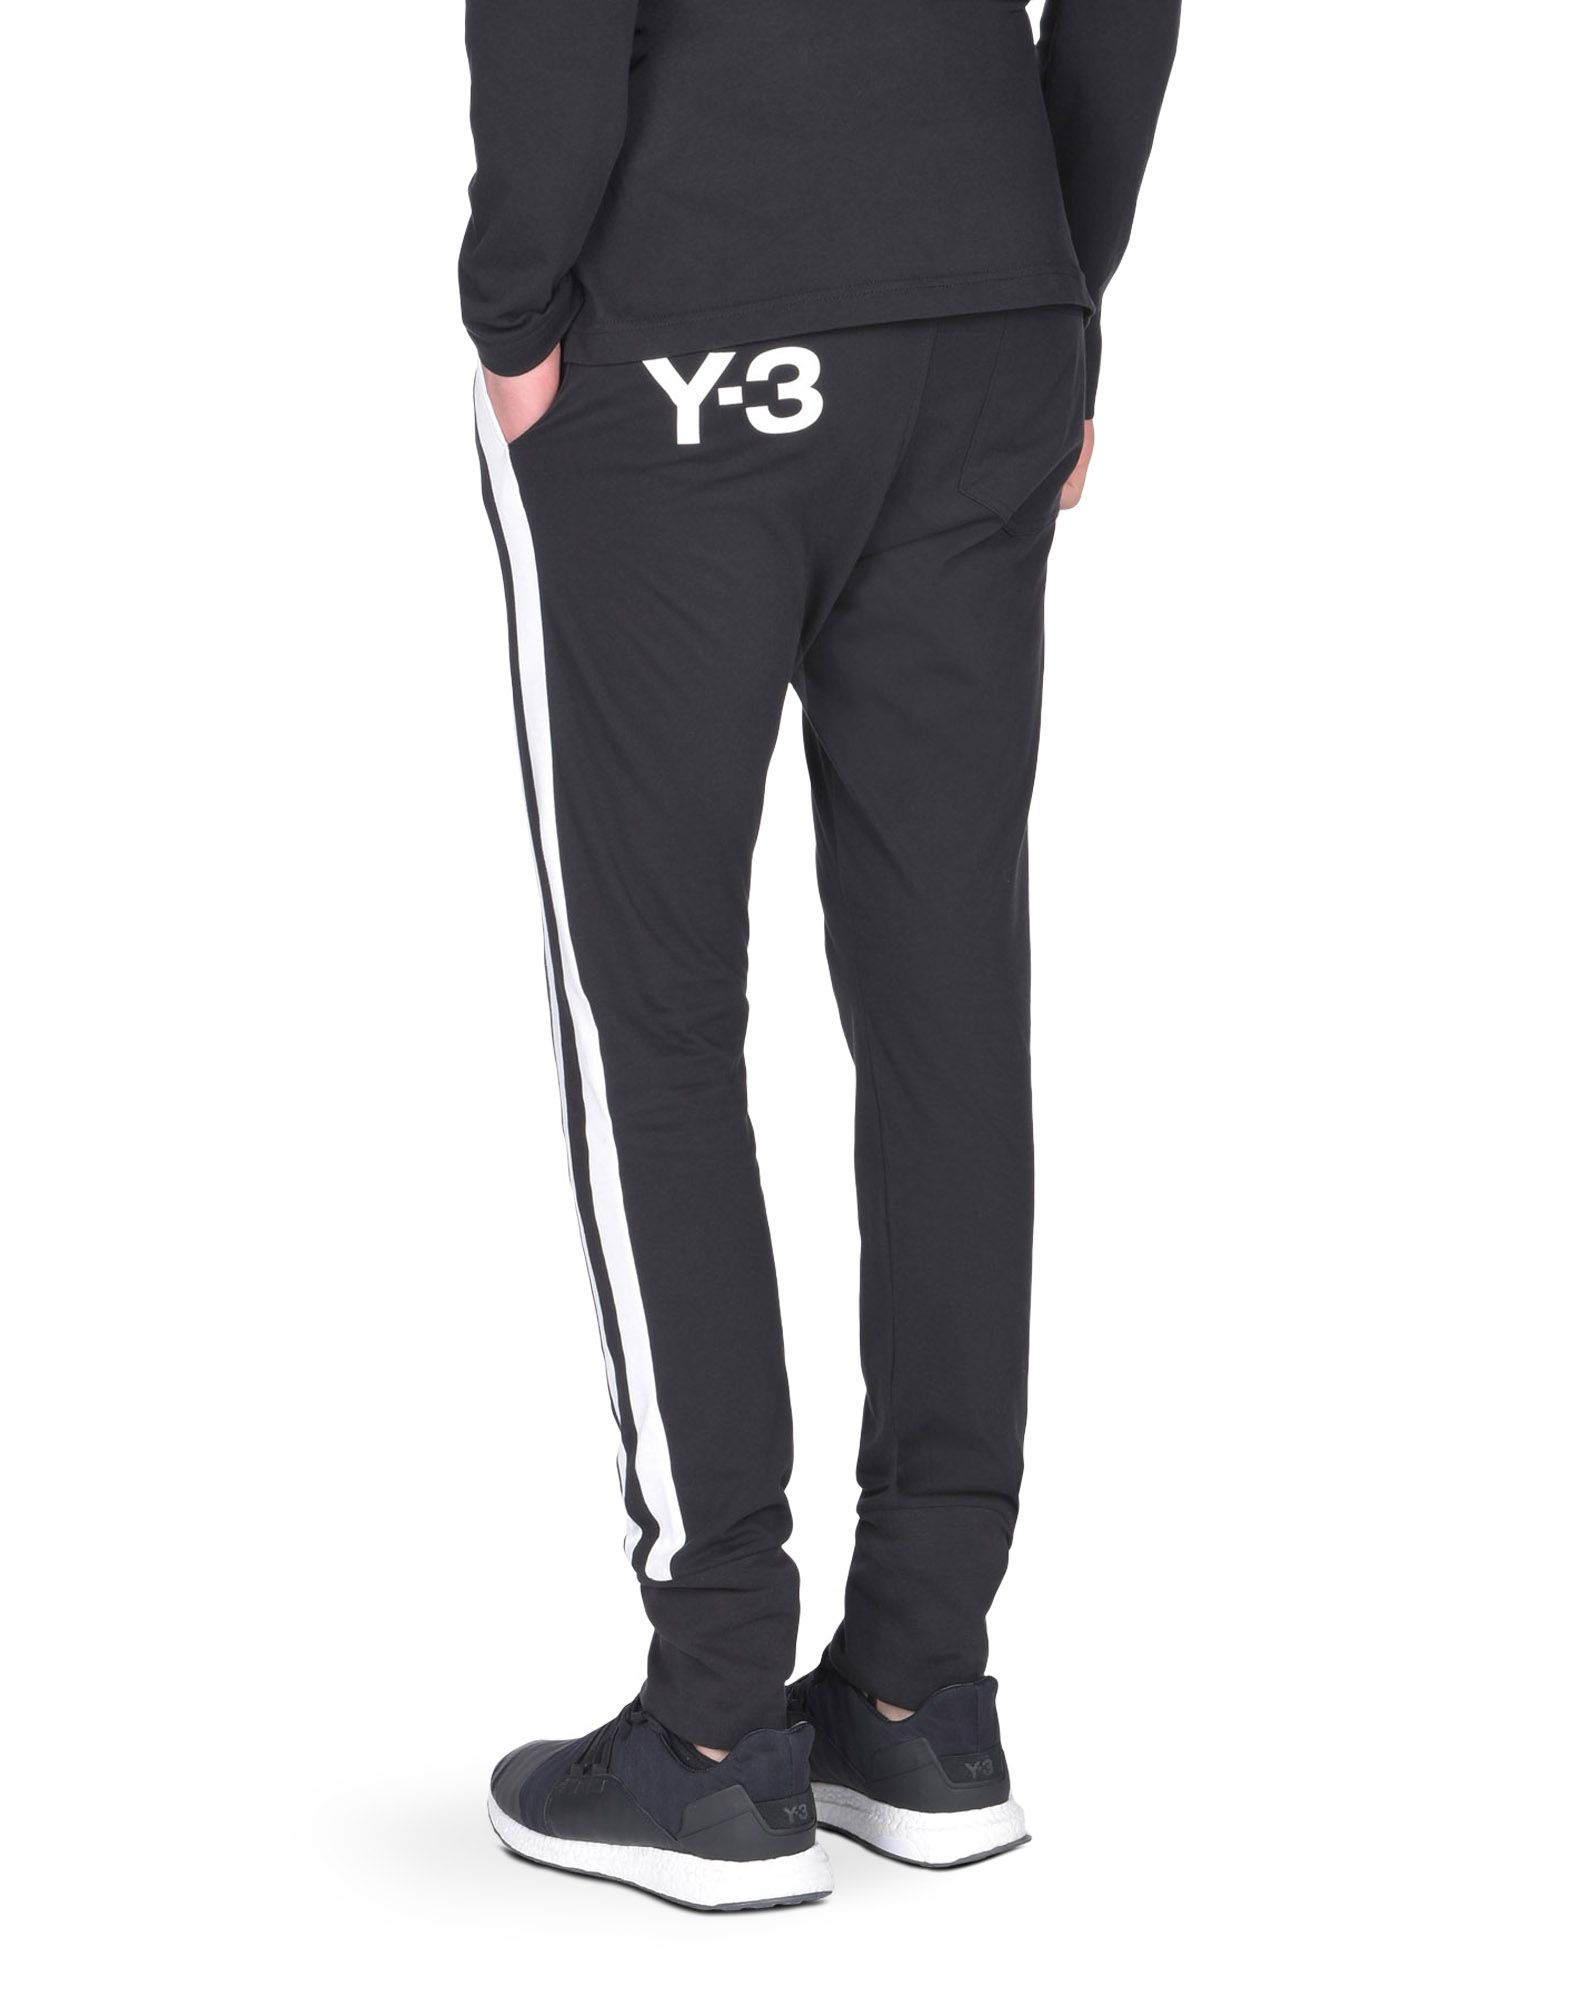 ... Y-3 Y-3 3-STRIPES PANT Casual pants Man e ... dbe26a59fa14